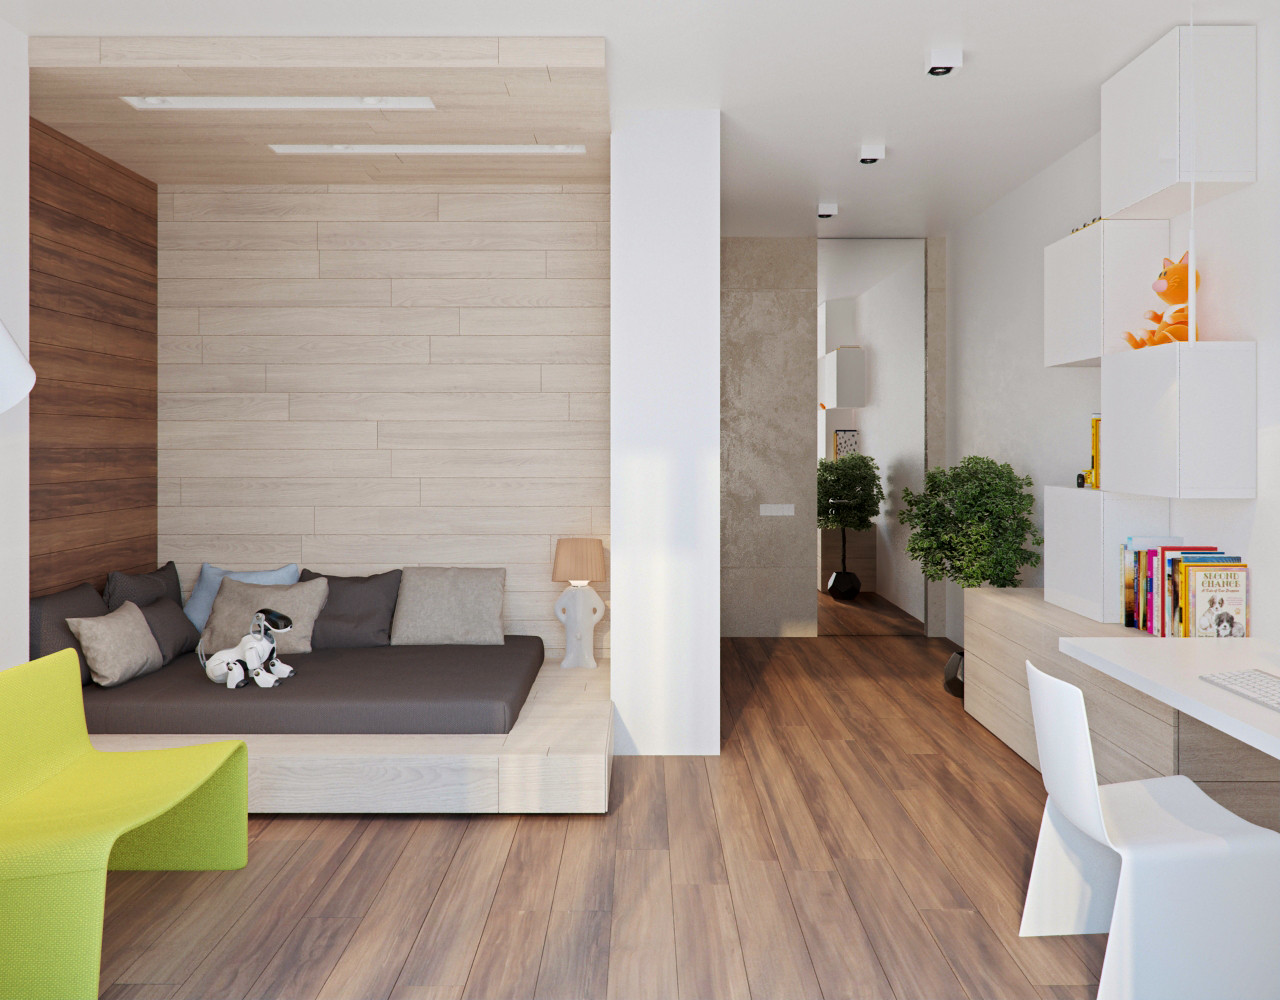 Best ideas about Modern Kids Room . Save or Pin Stone and Wood Home with Creative Fixtures Now.